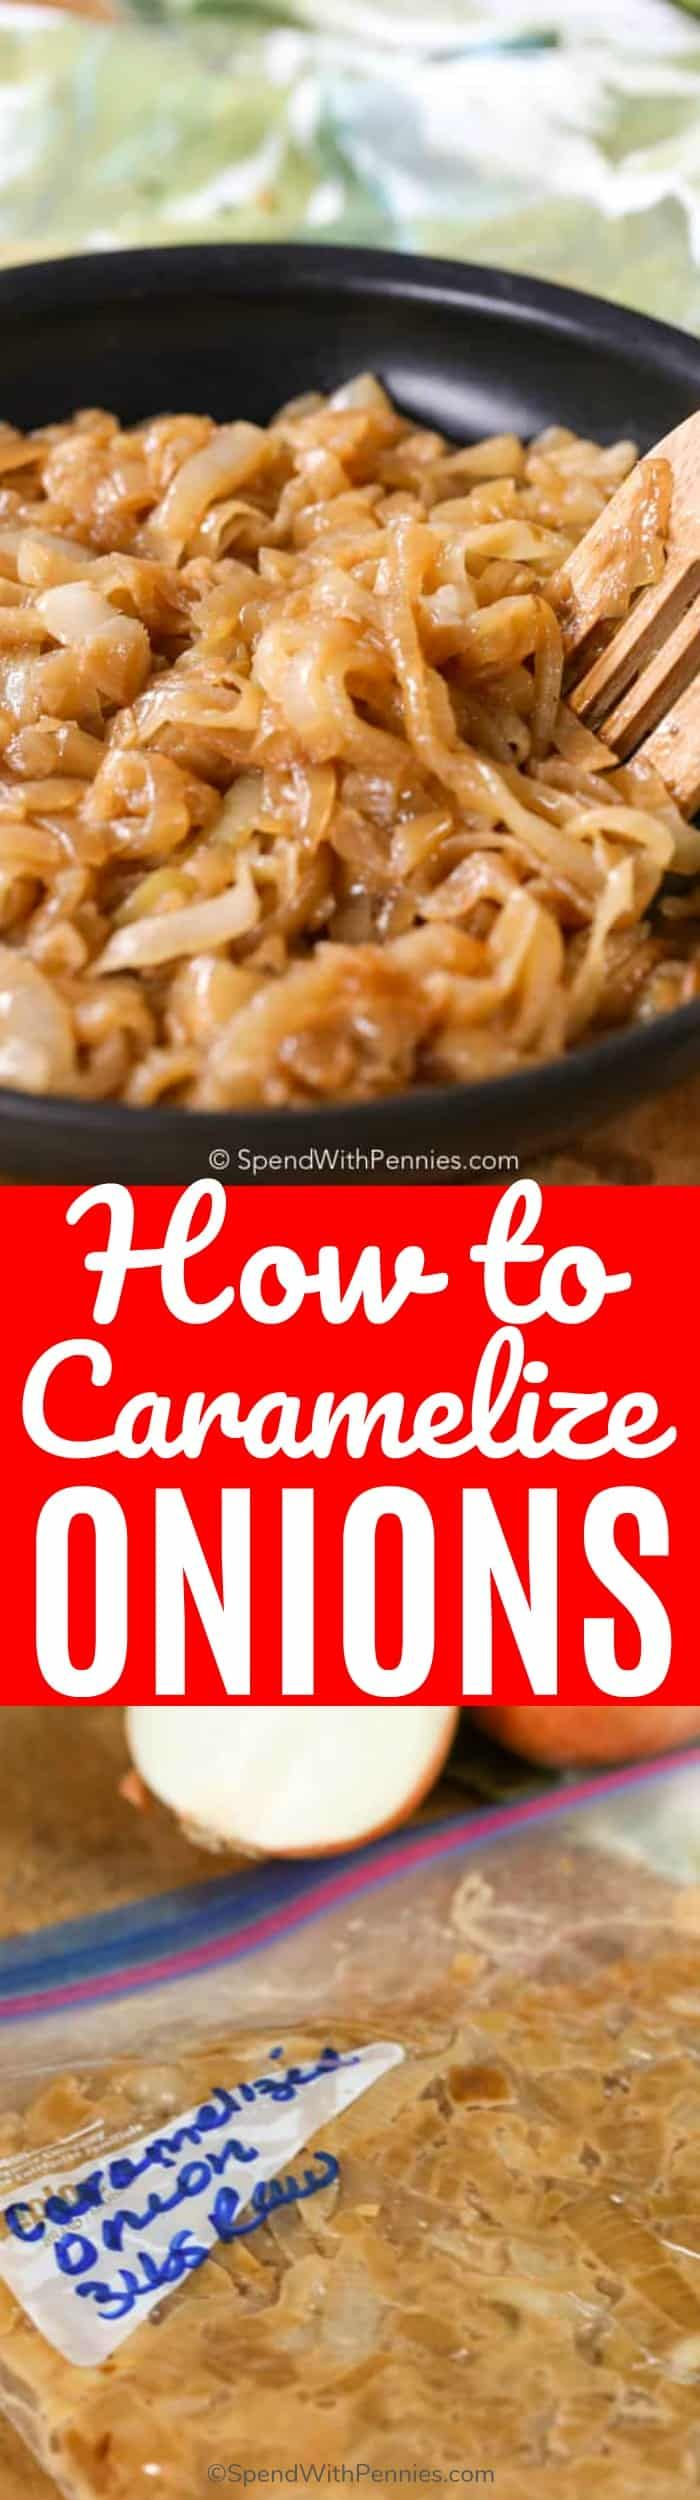 Caramelized onions are easily one of the most versatile and deliciously-sweet addition to any dish. They go great on burgers, steaks, and even in soups! #spendwithpennies #onions #caramelize #freezerready #easyrecipe